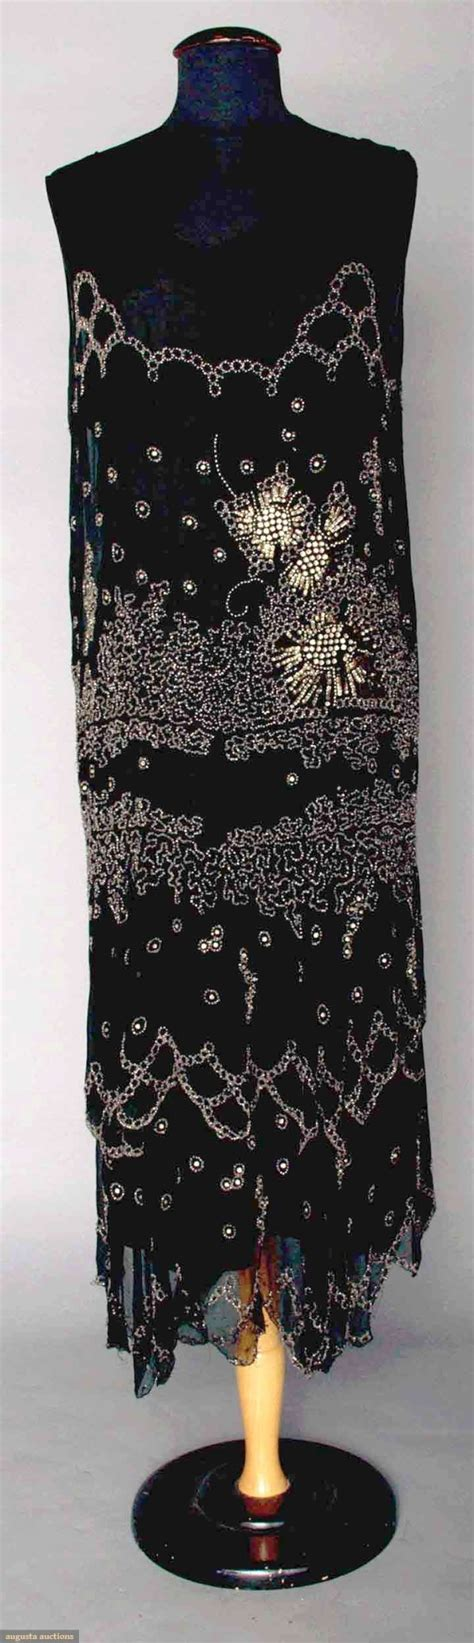 sequined abstract pattern dress crystal beaded dress early 1920s black silk chiffon